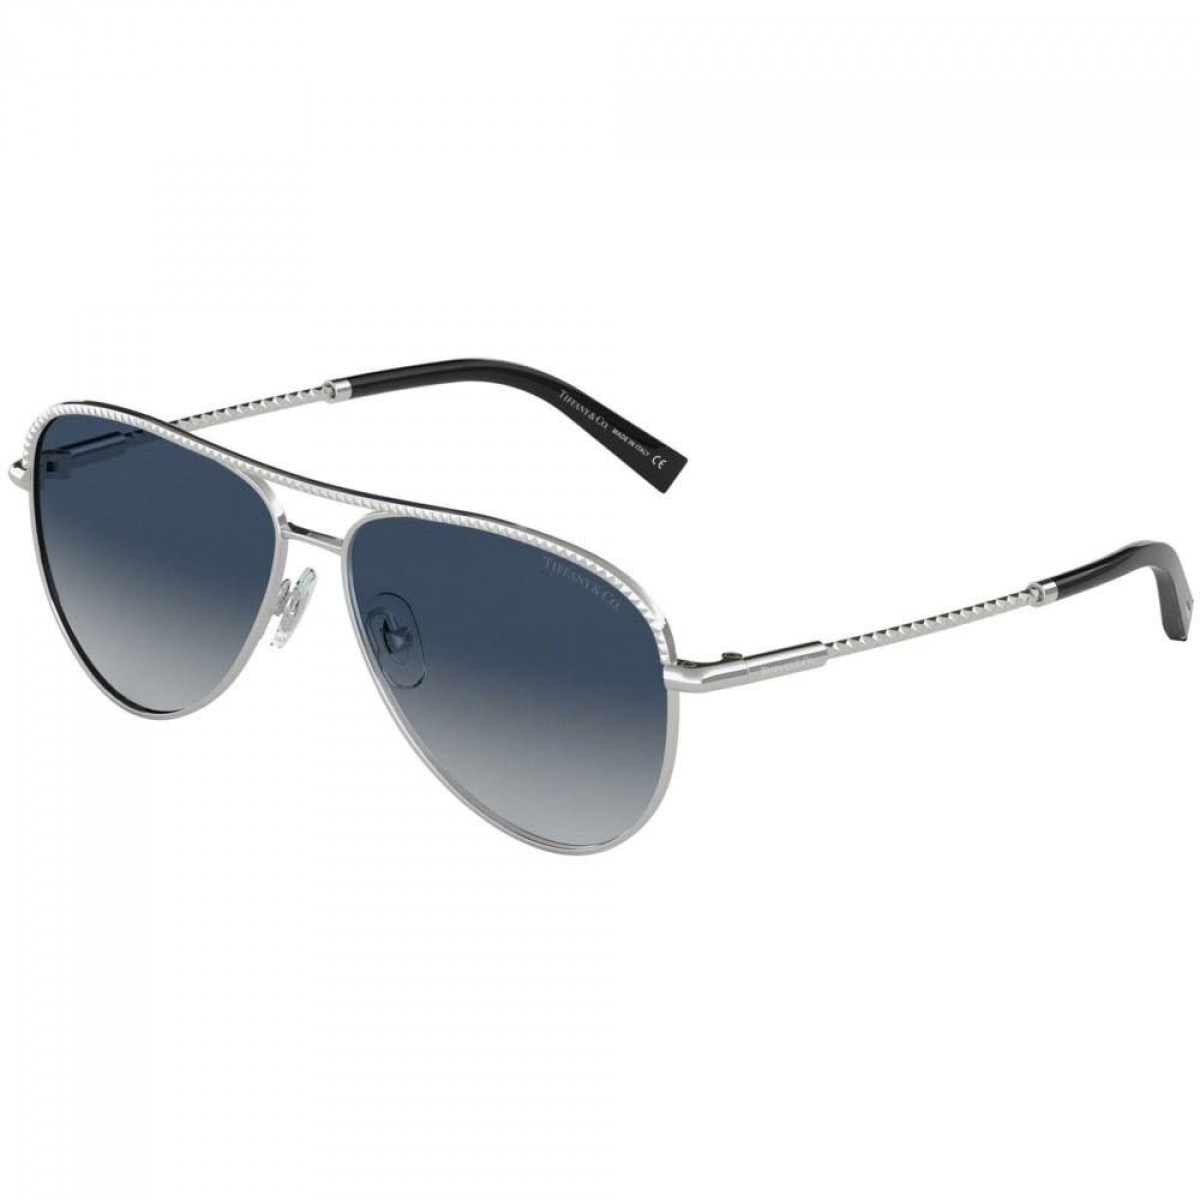 Tiffany & Co. 3062 60014L 57, 182,04 €, Occhiali Tiffany & Co. Argento a forma Goccia aviator